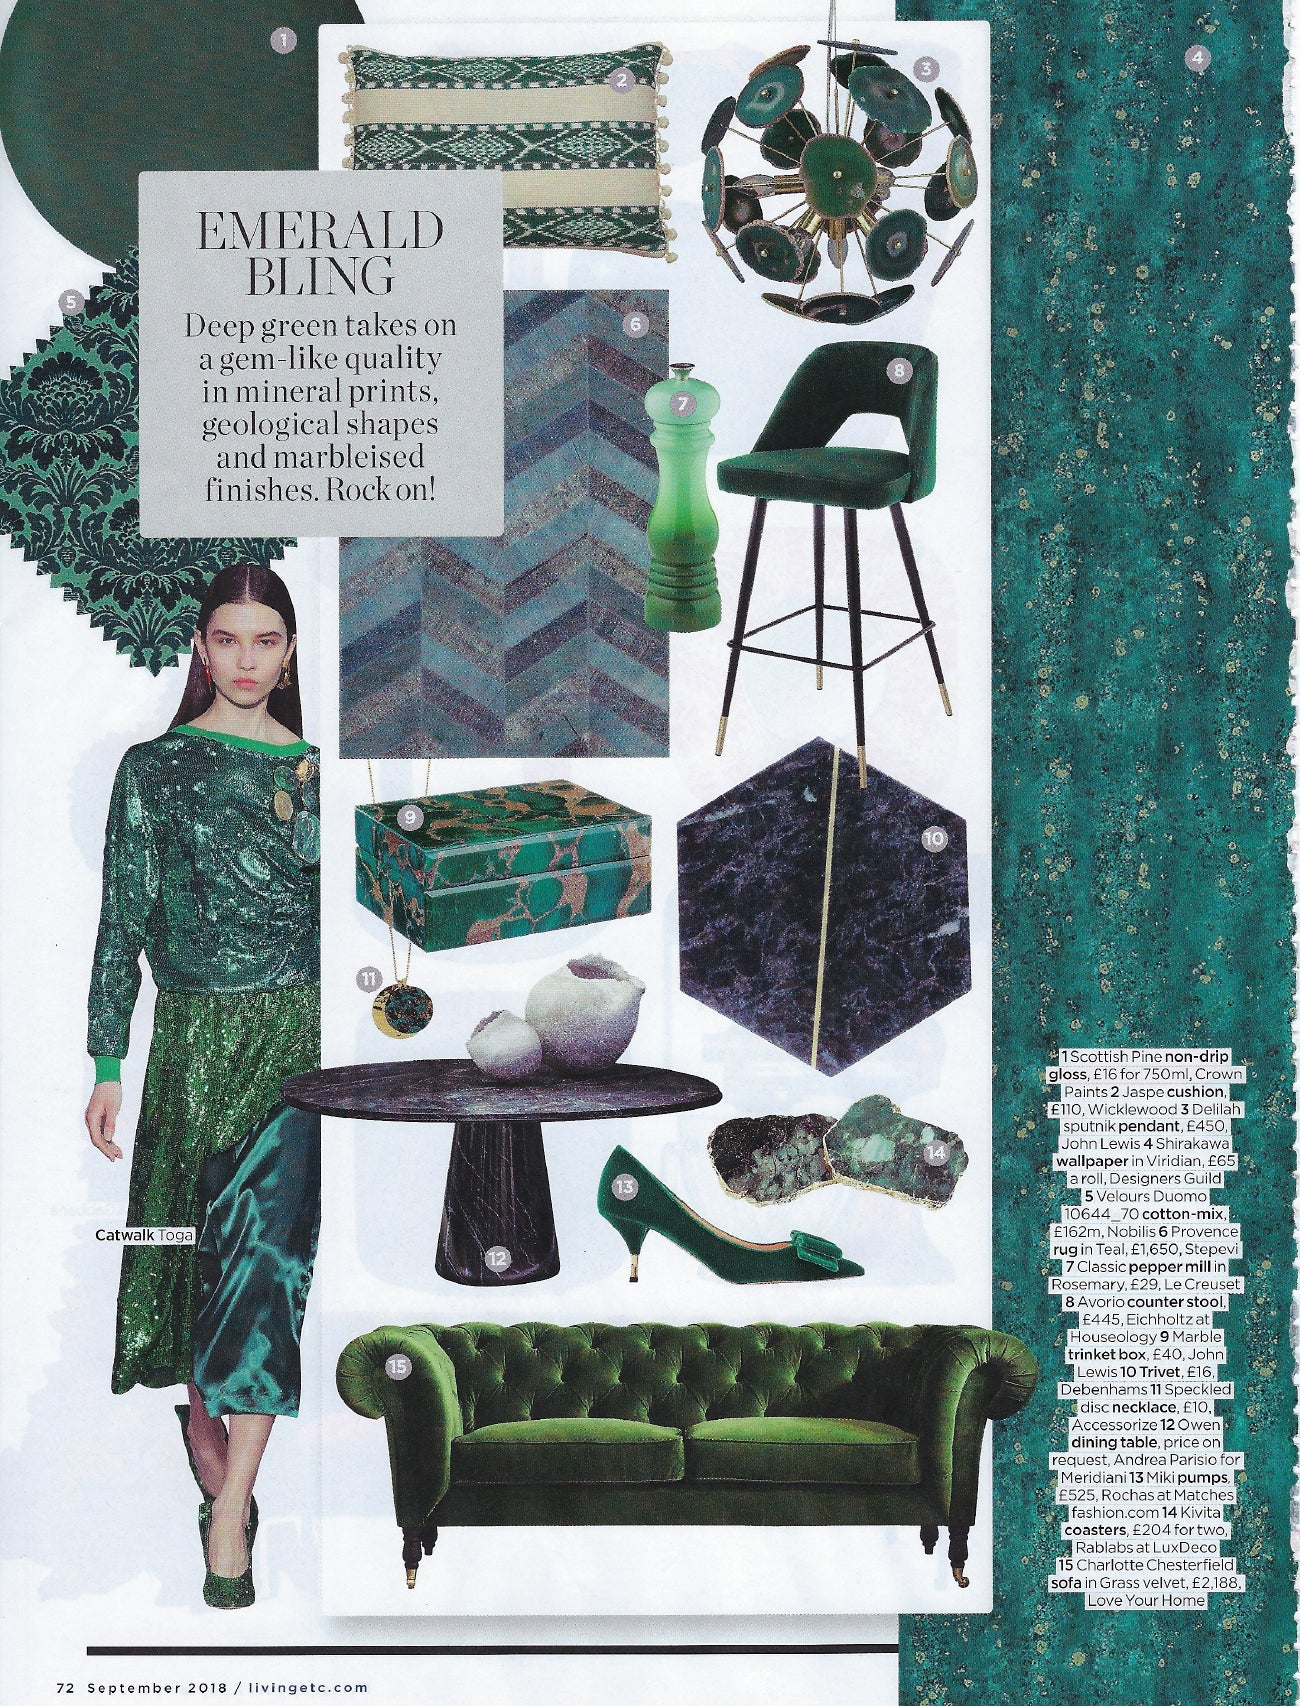 Wicklewood Press - Green Antigua cushion featured in Living Etc September 2018 issue, Emerald Bling article.